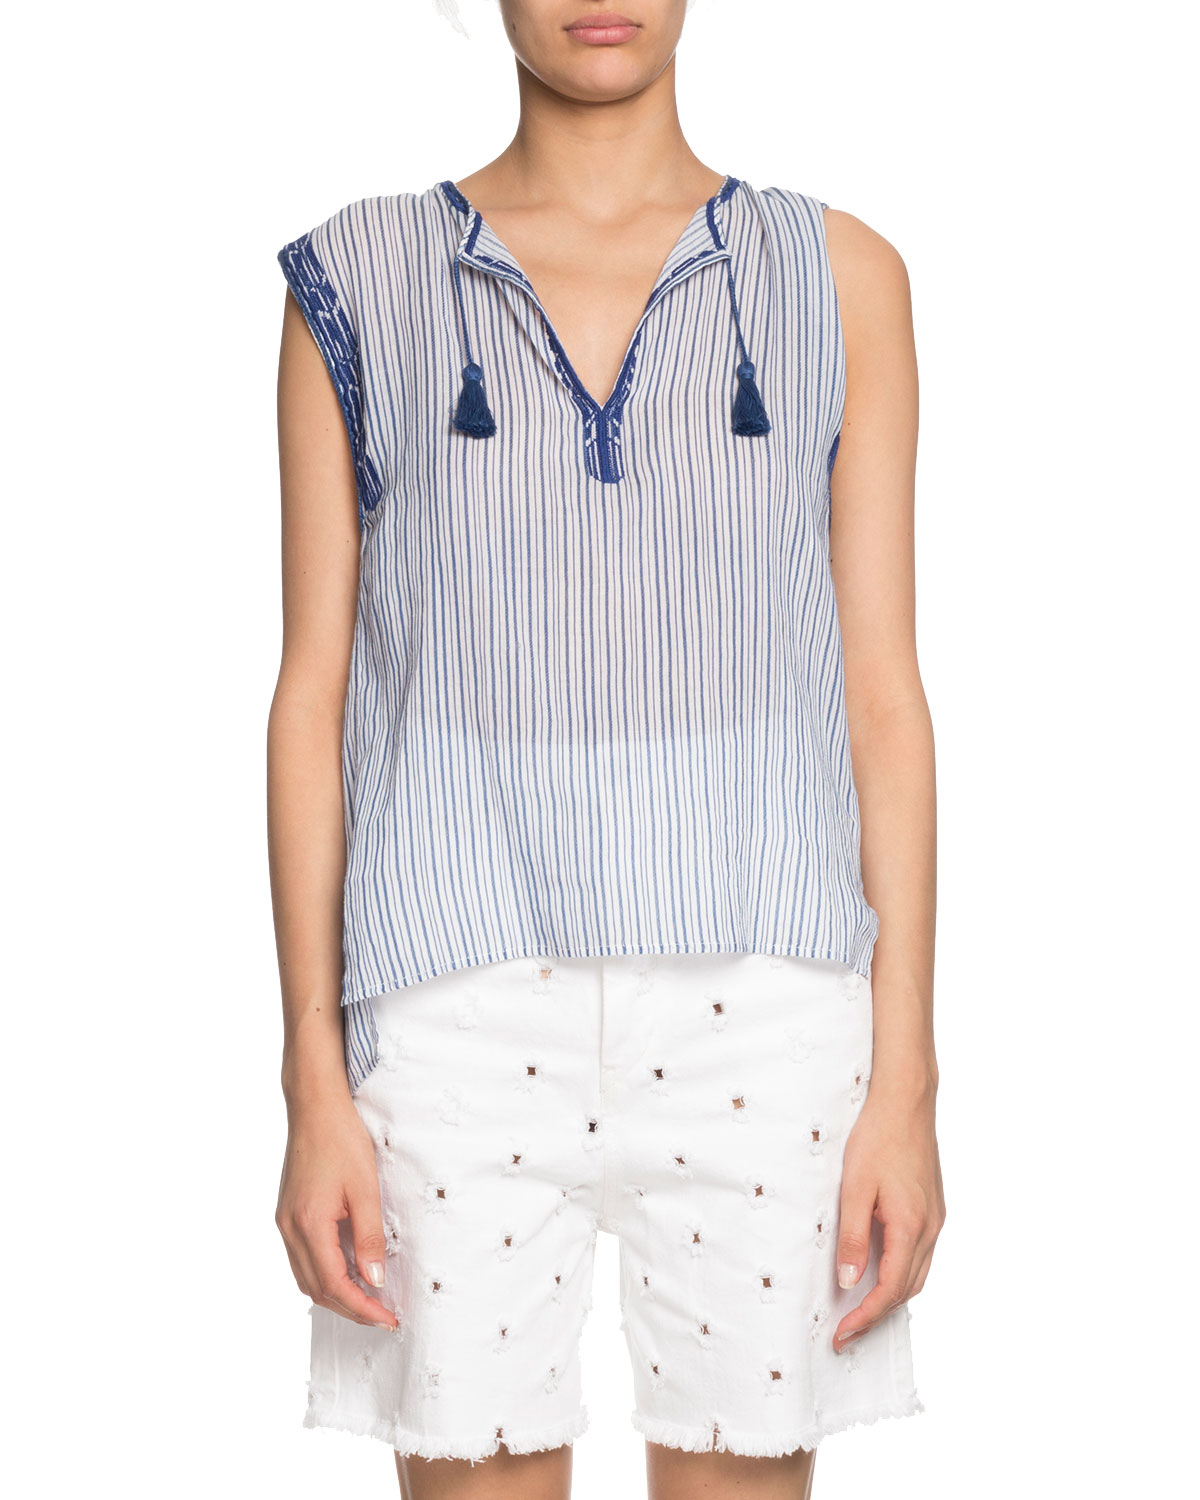 bbd168624d8144 Etoile Isabel Marant Juditha Striped Embroidered Sleeveless Top ...